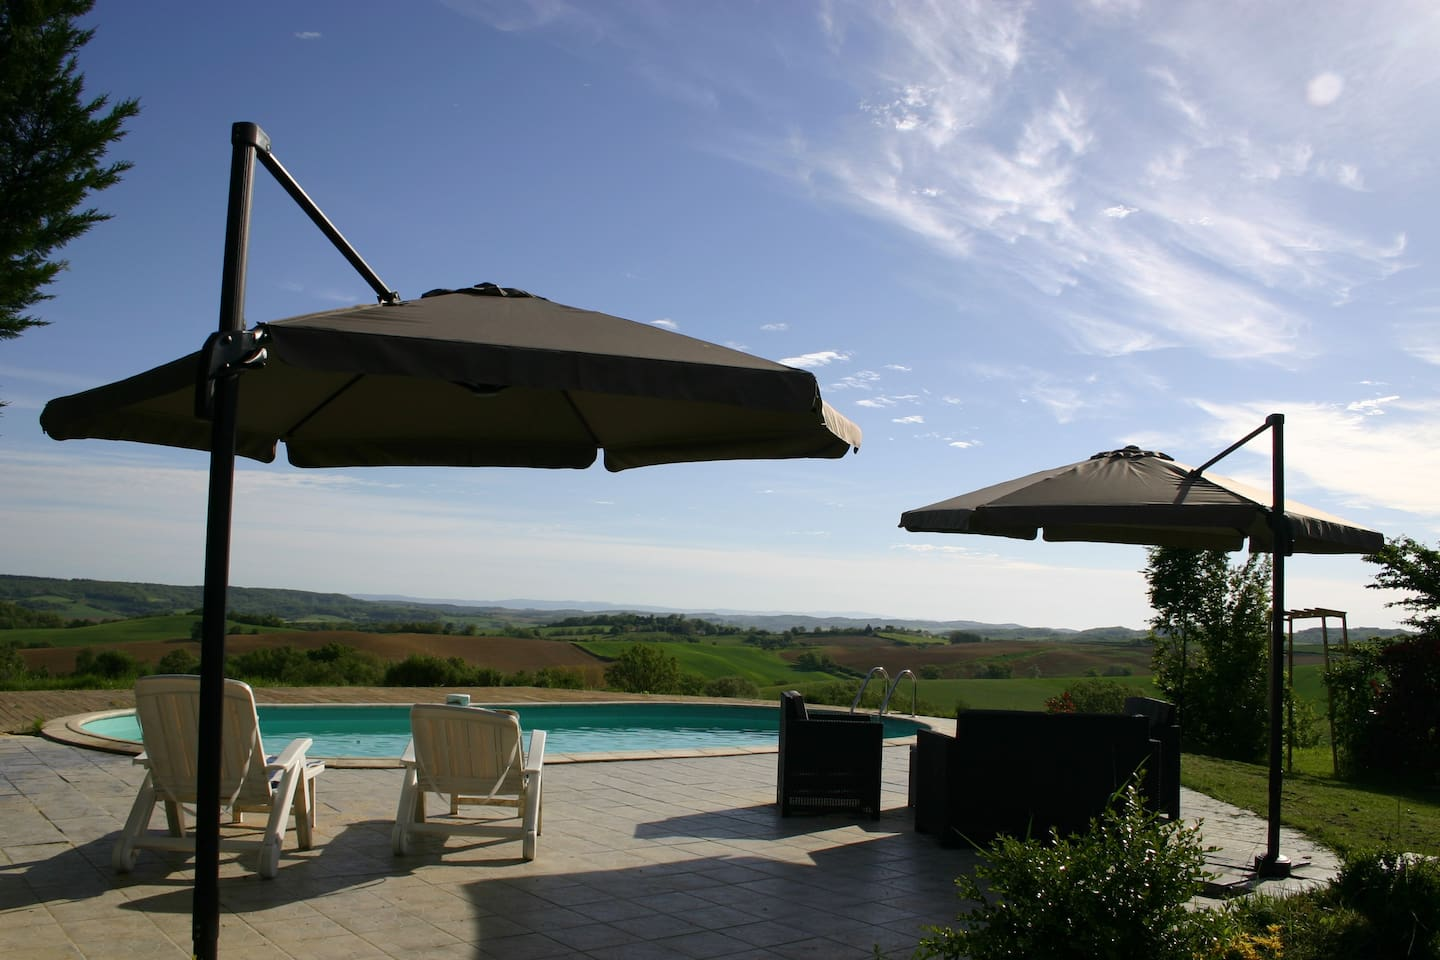 Just relax by the pool and take in the stunning views